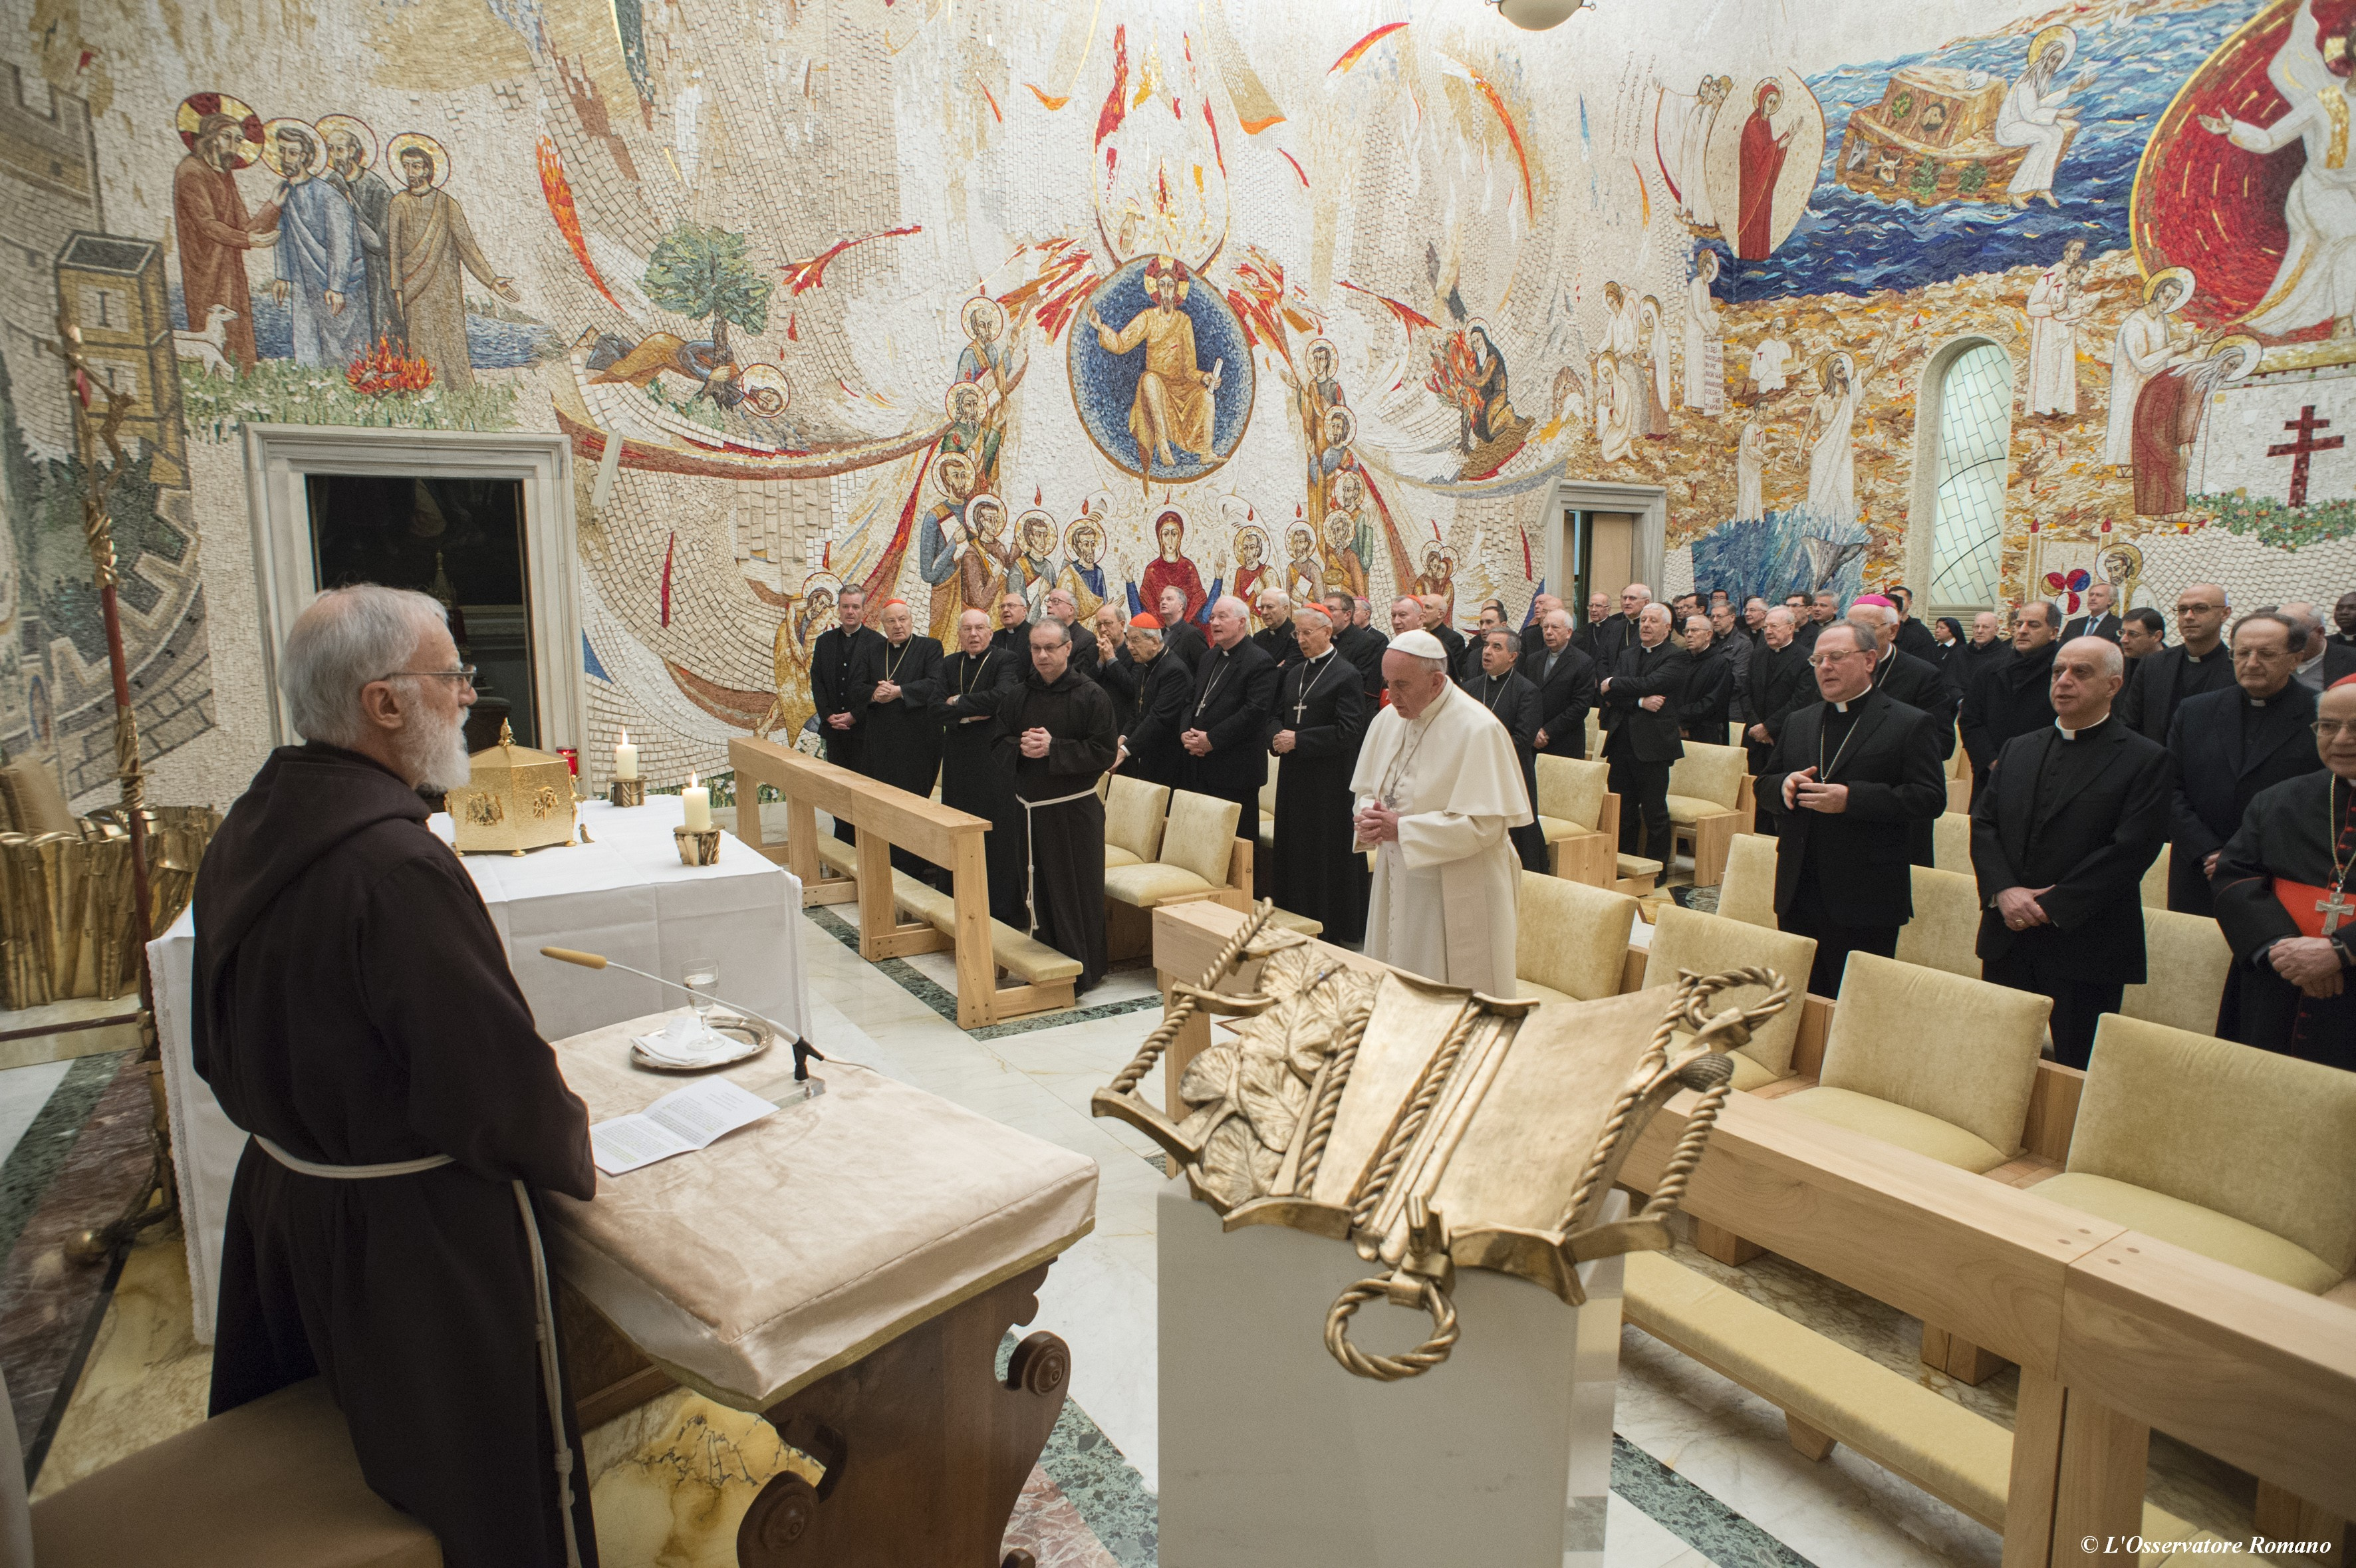 The first Advent homily for 2015 was preached by Fr Raniero Cantalamessa